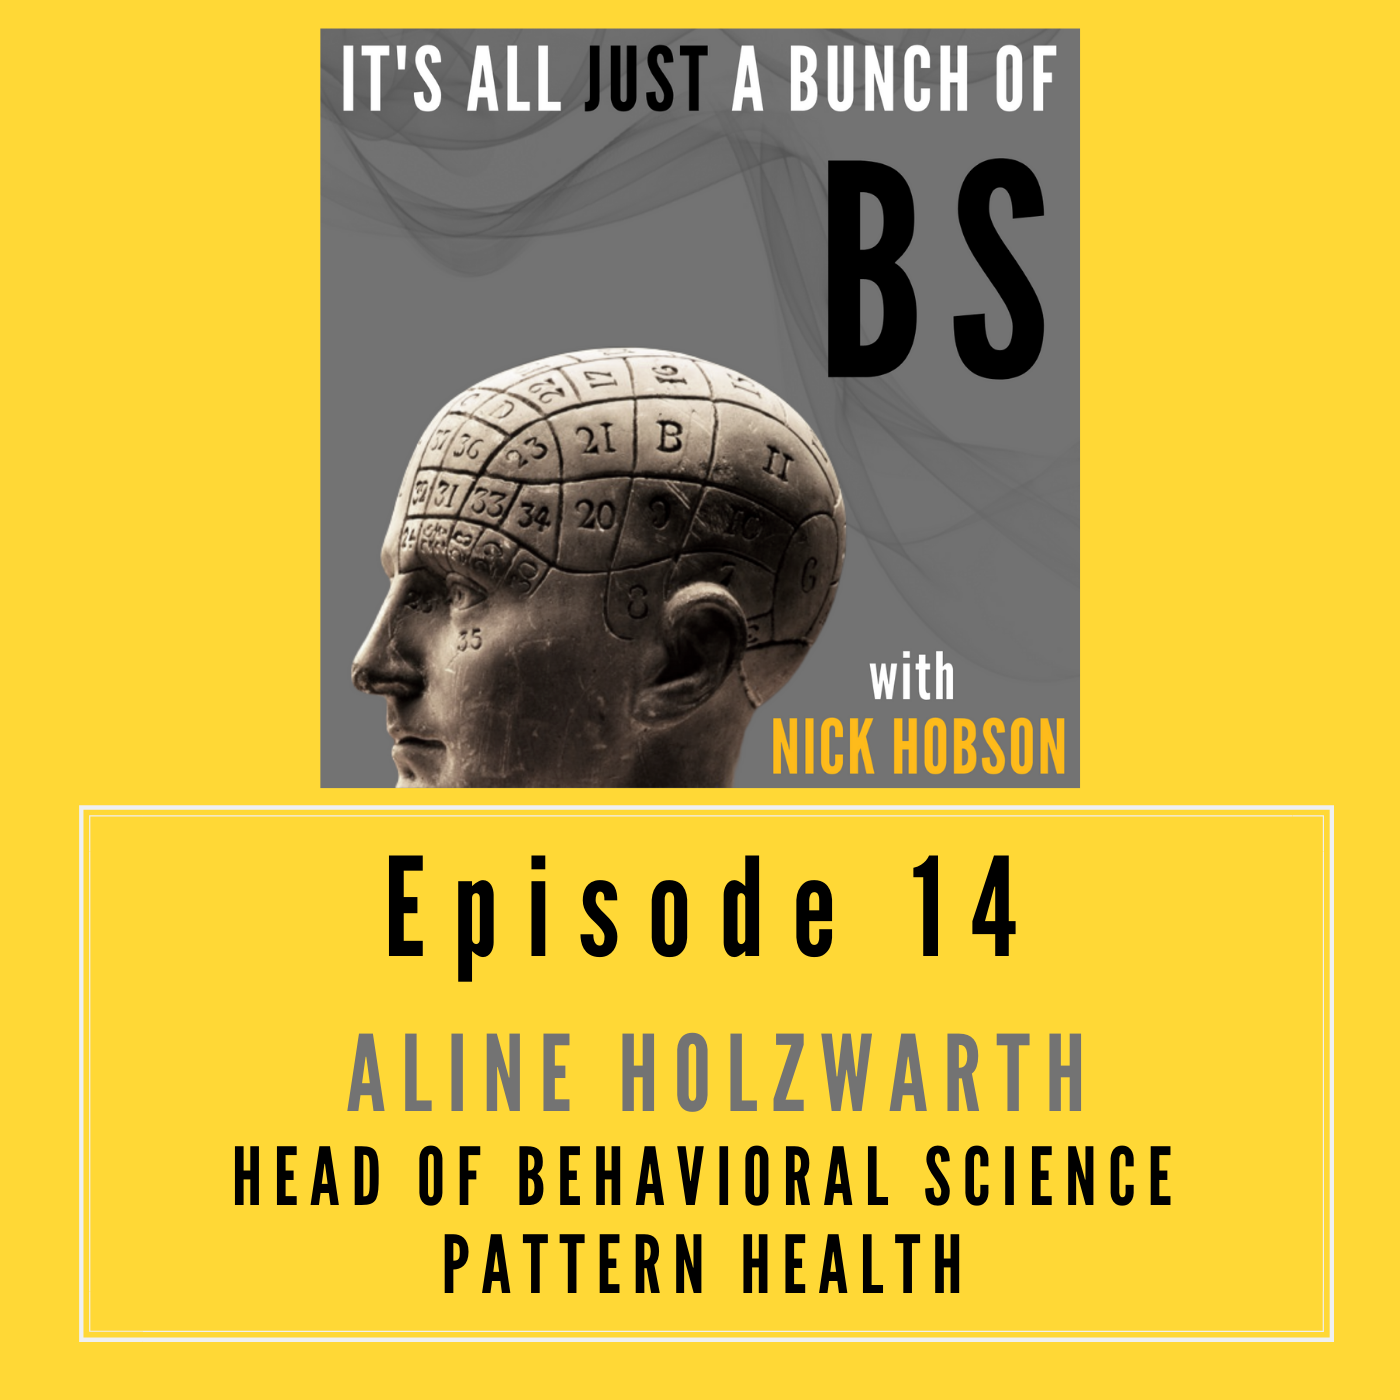 Episode 14 with ALINE HOLZWARTH: A Healthy Outlook on Behavior Change